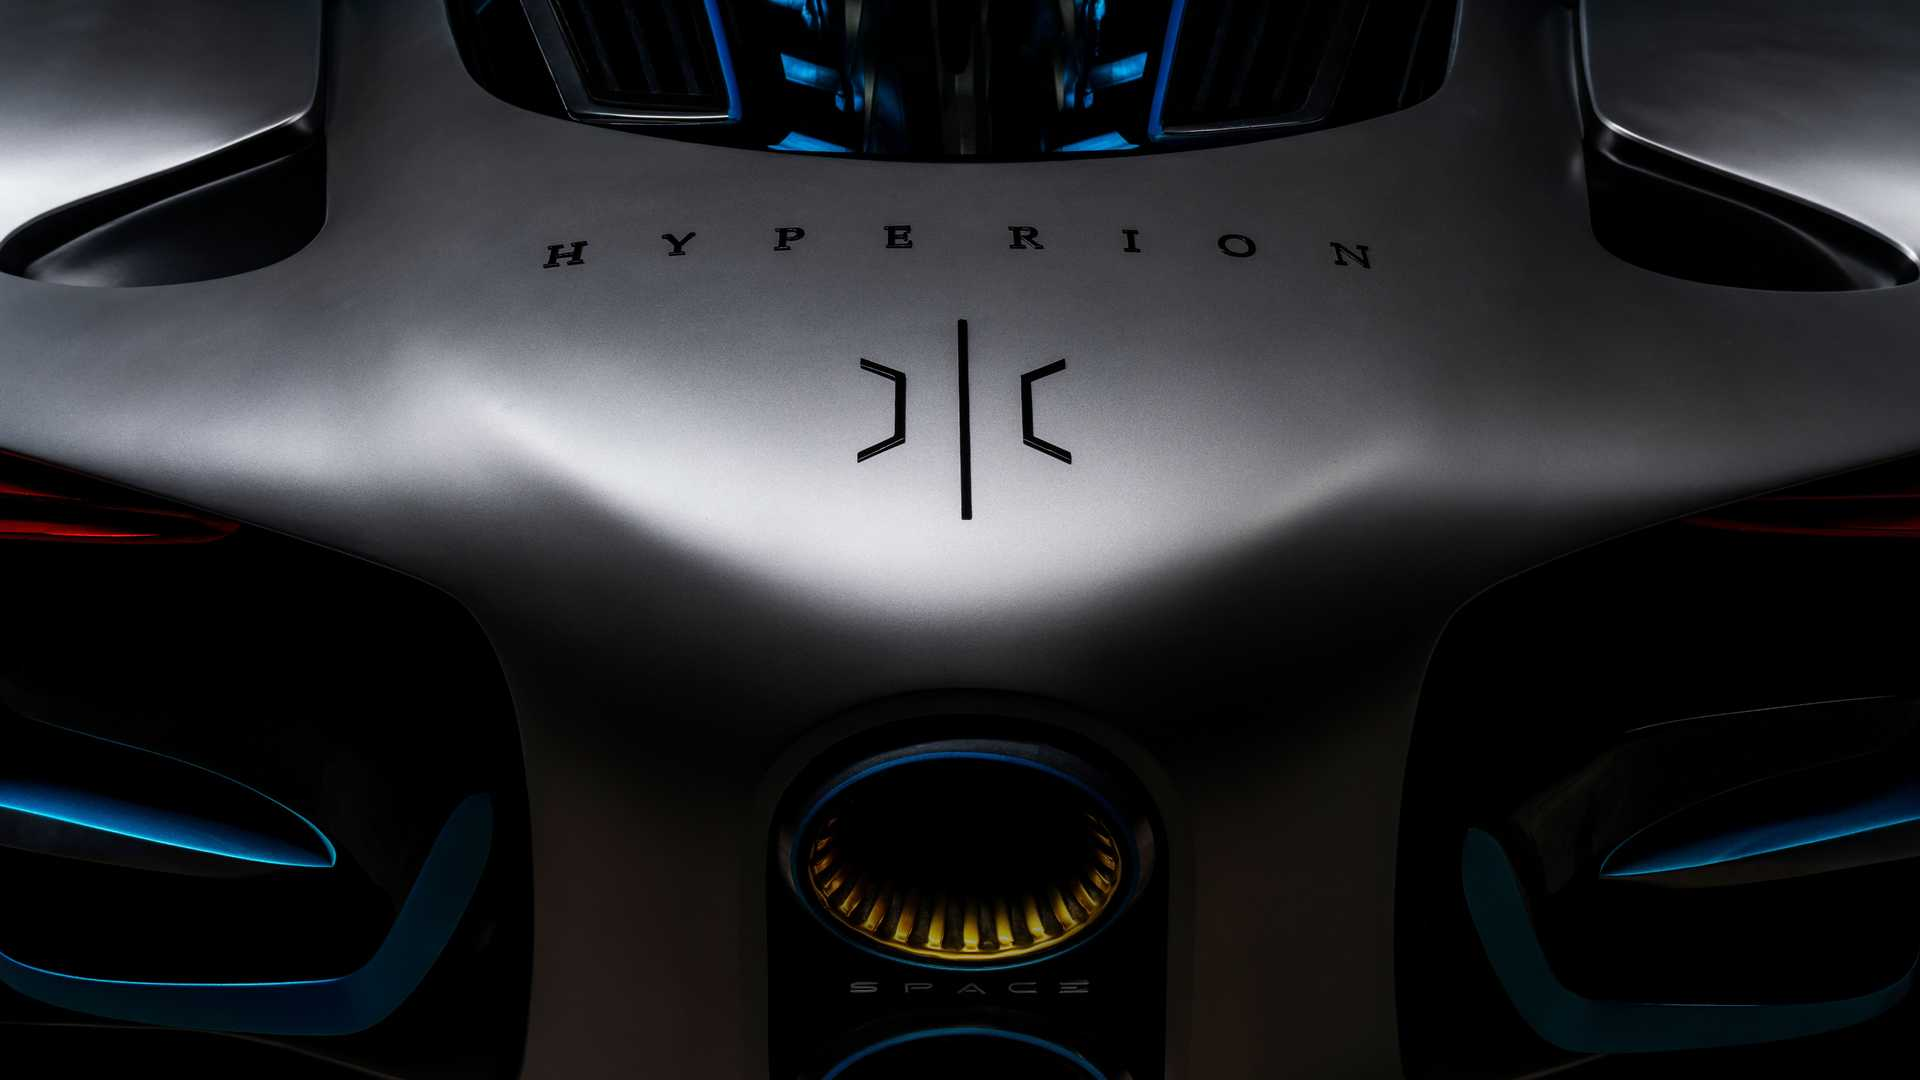 hyperion-xp-1-rear-close